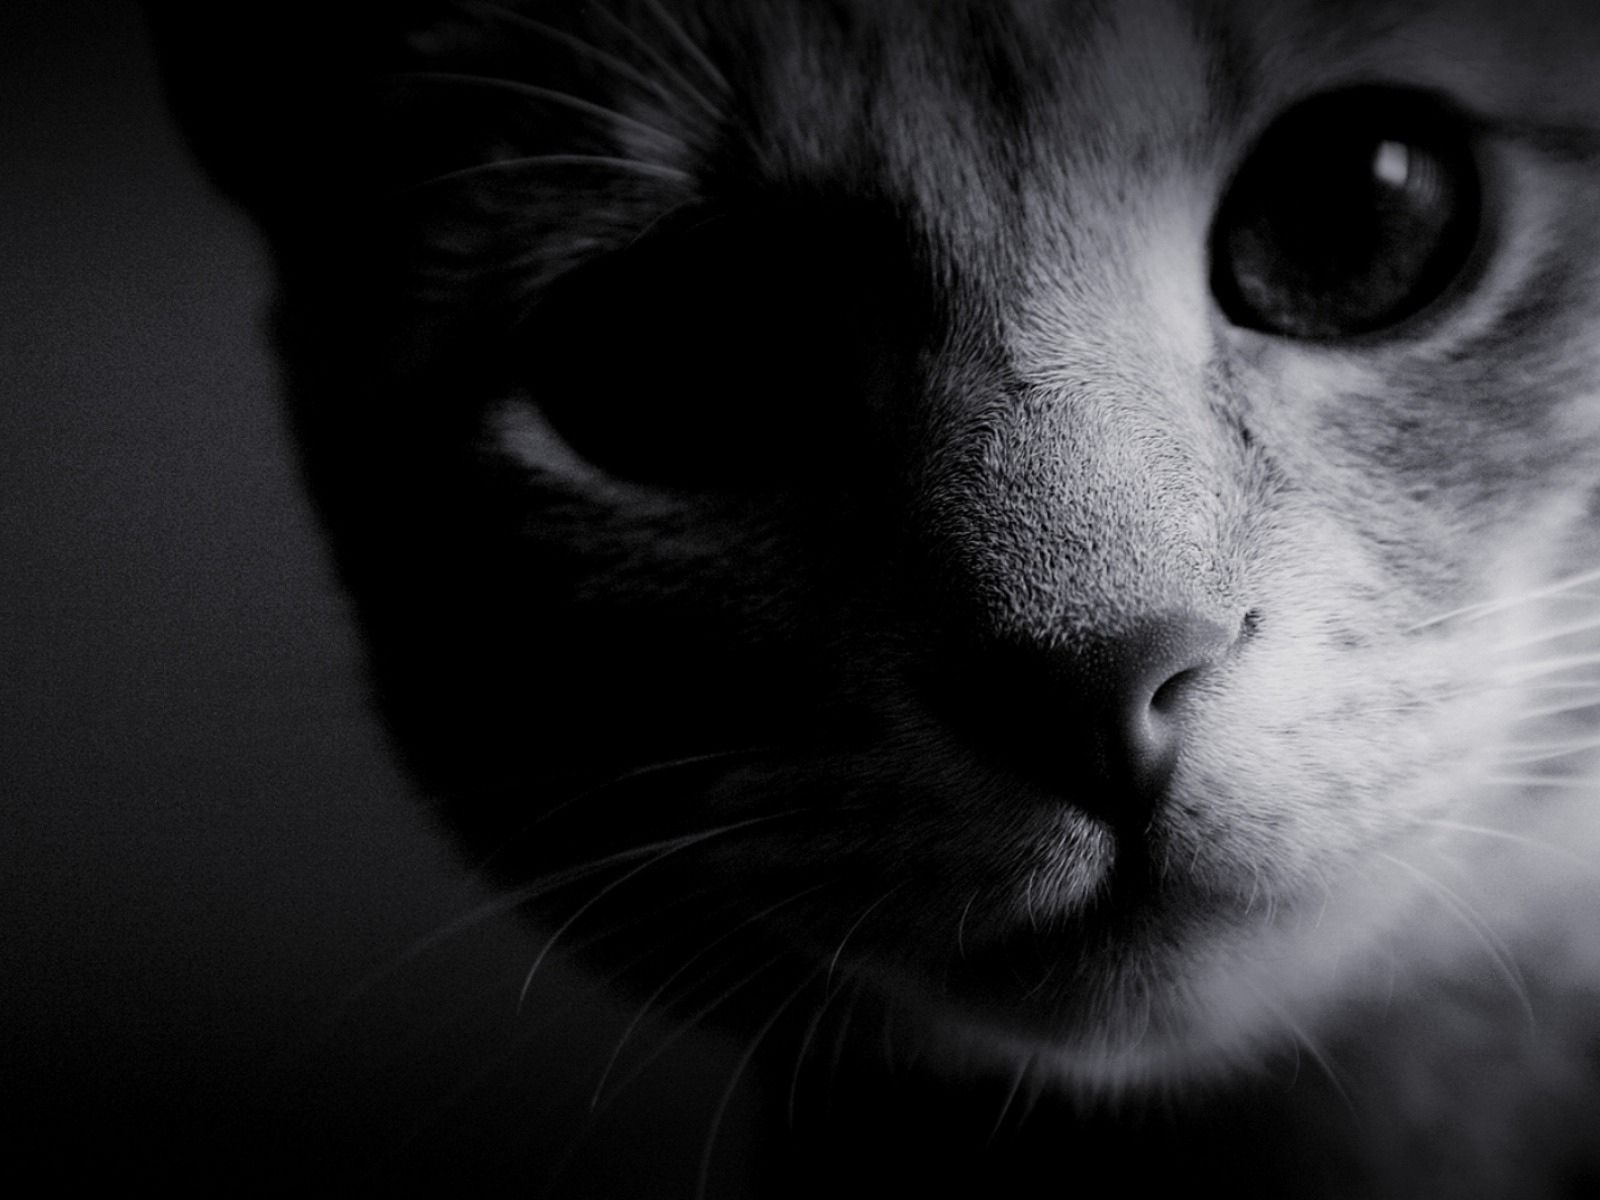 77883 Screensavers and Wallpapers Nose for phone. Download Dark, Cat, Muzzle, Eyes, Bw, Chb, Nose, Wool pictures for free